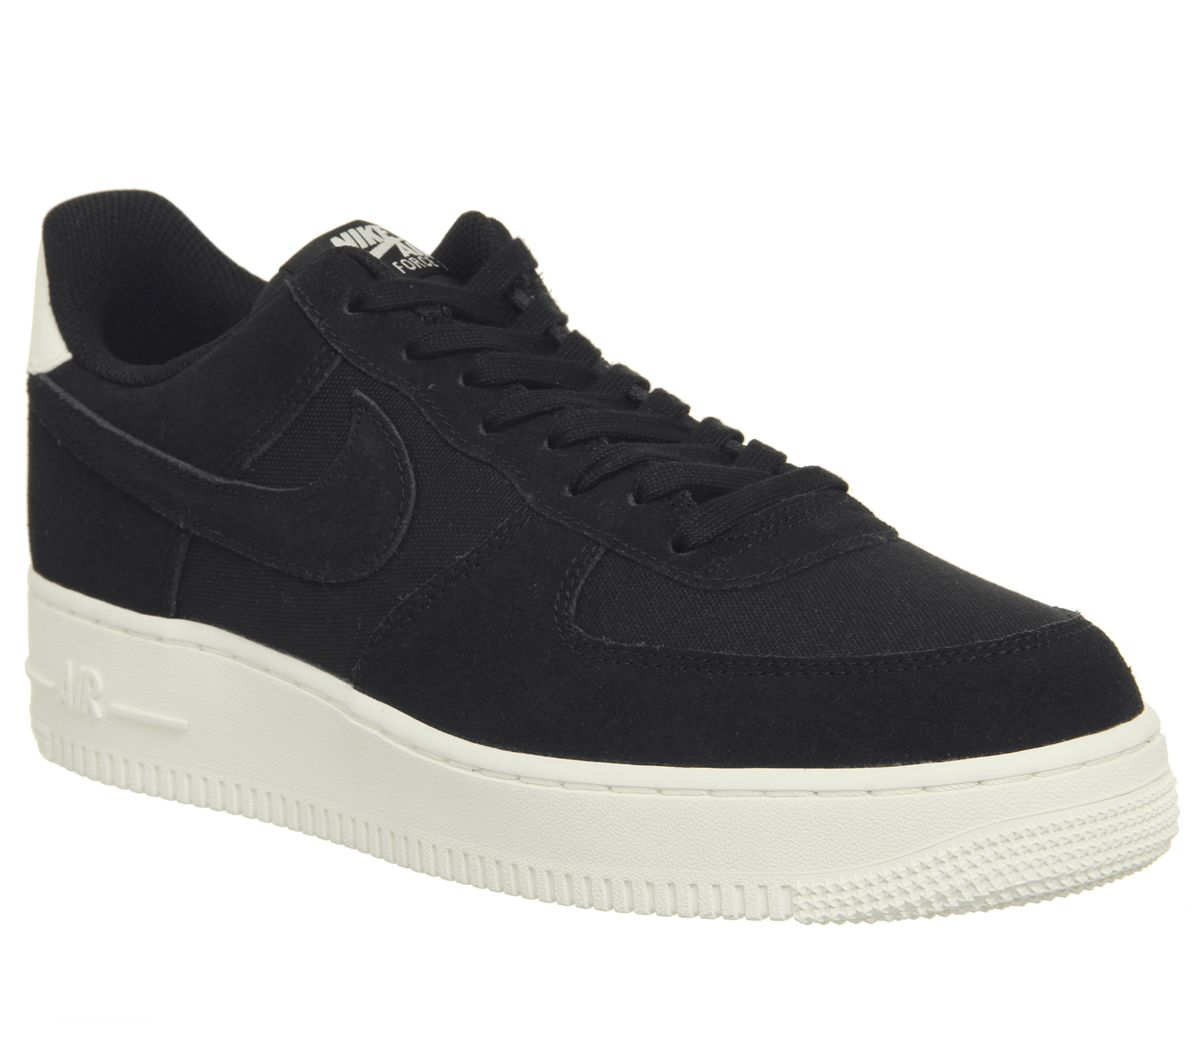 low priced 4e1fe 1f0a0 Nike Air Force 1 07 Trainers Black Sail - His trainers